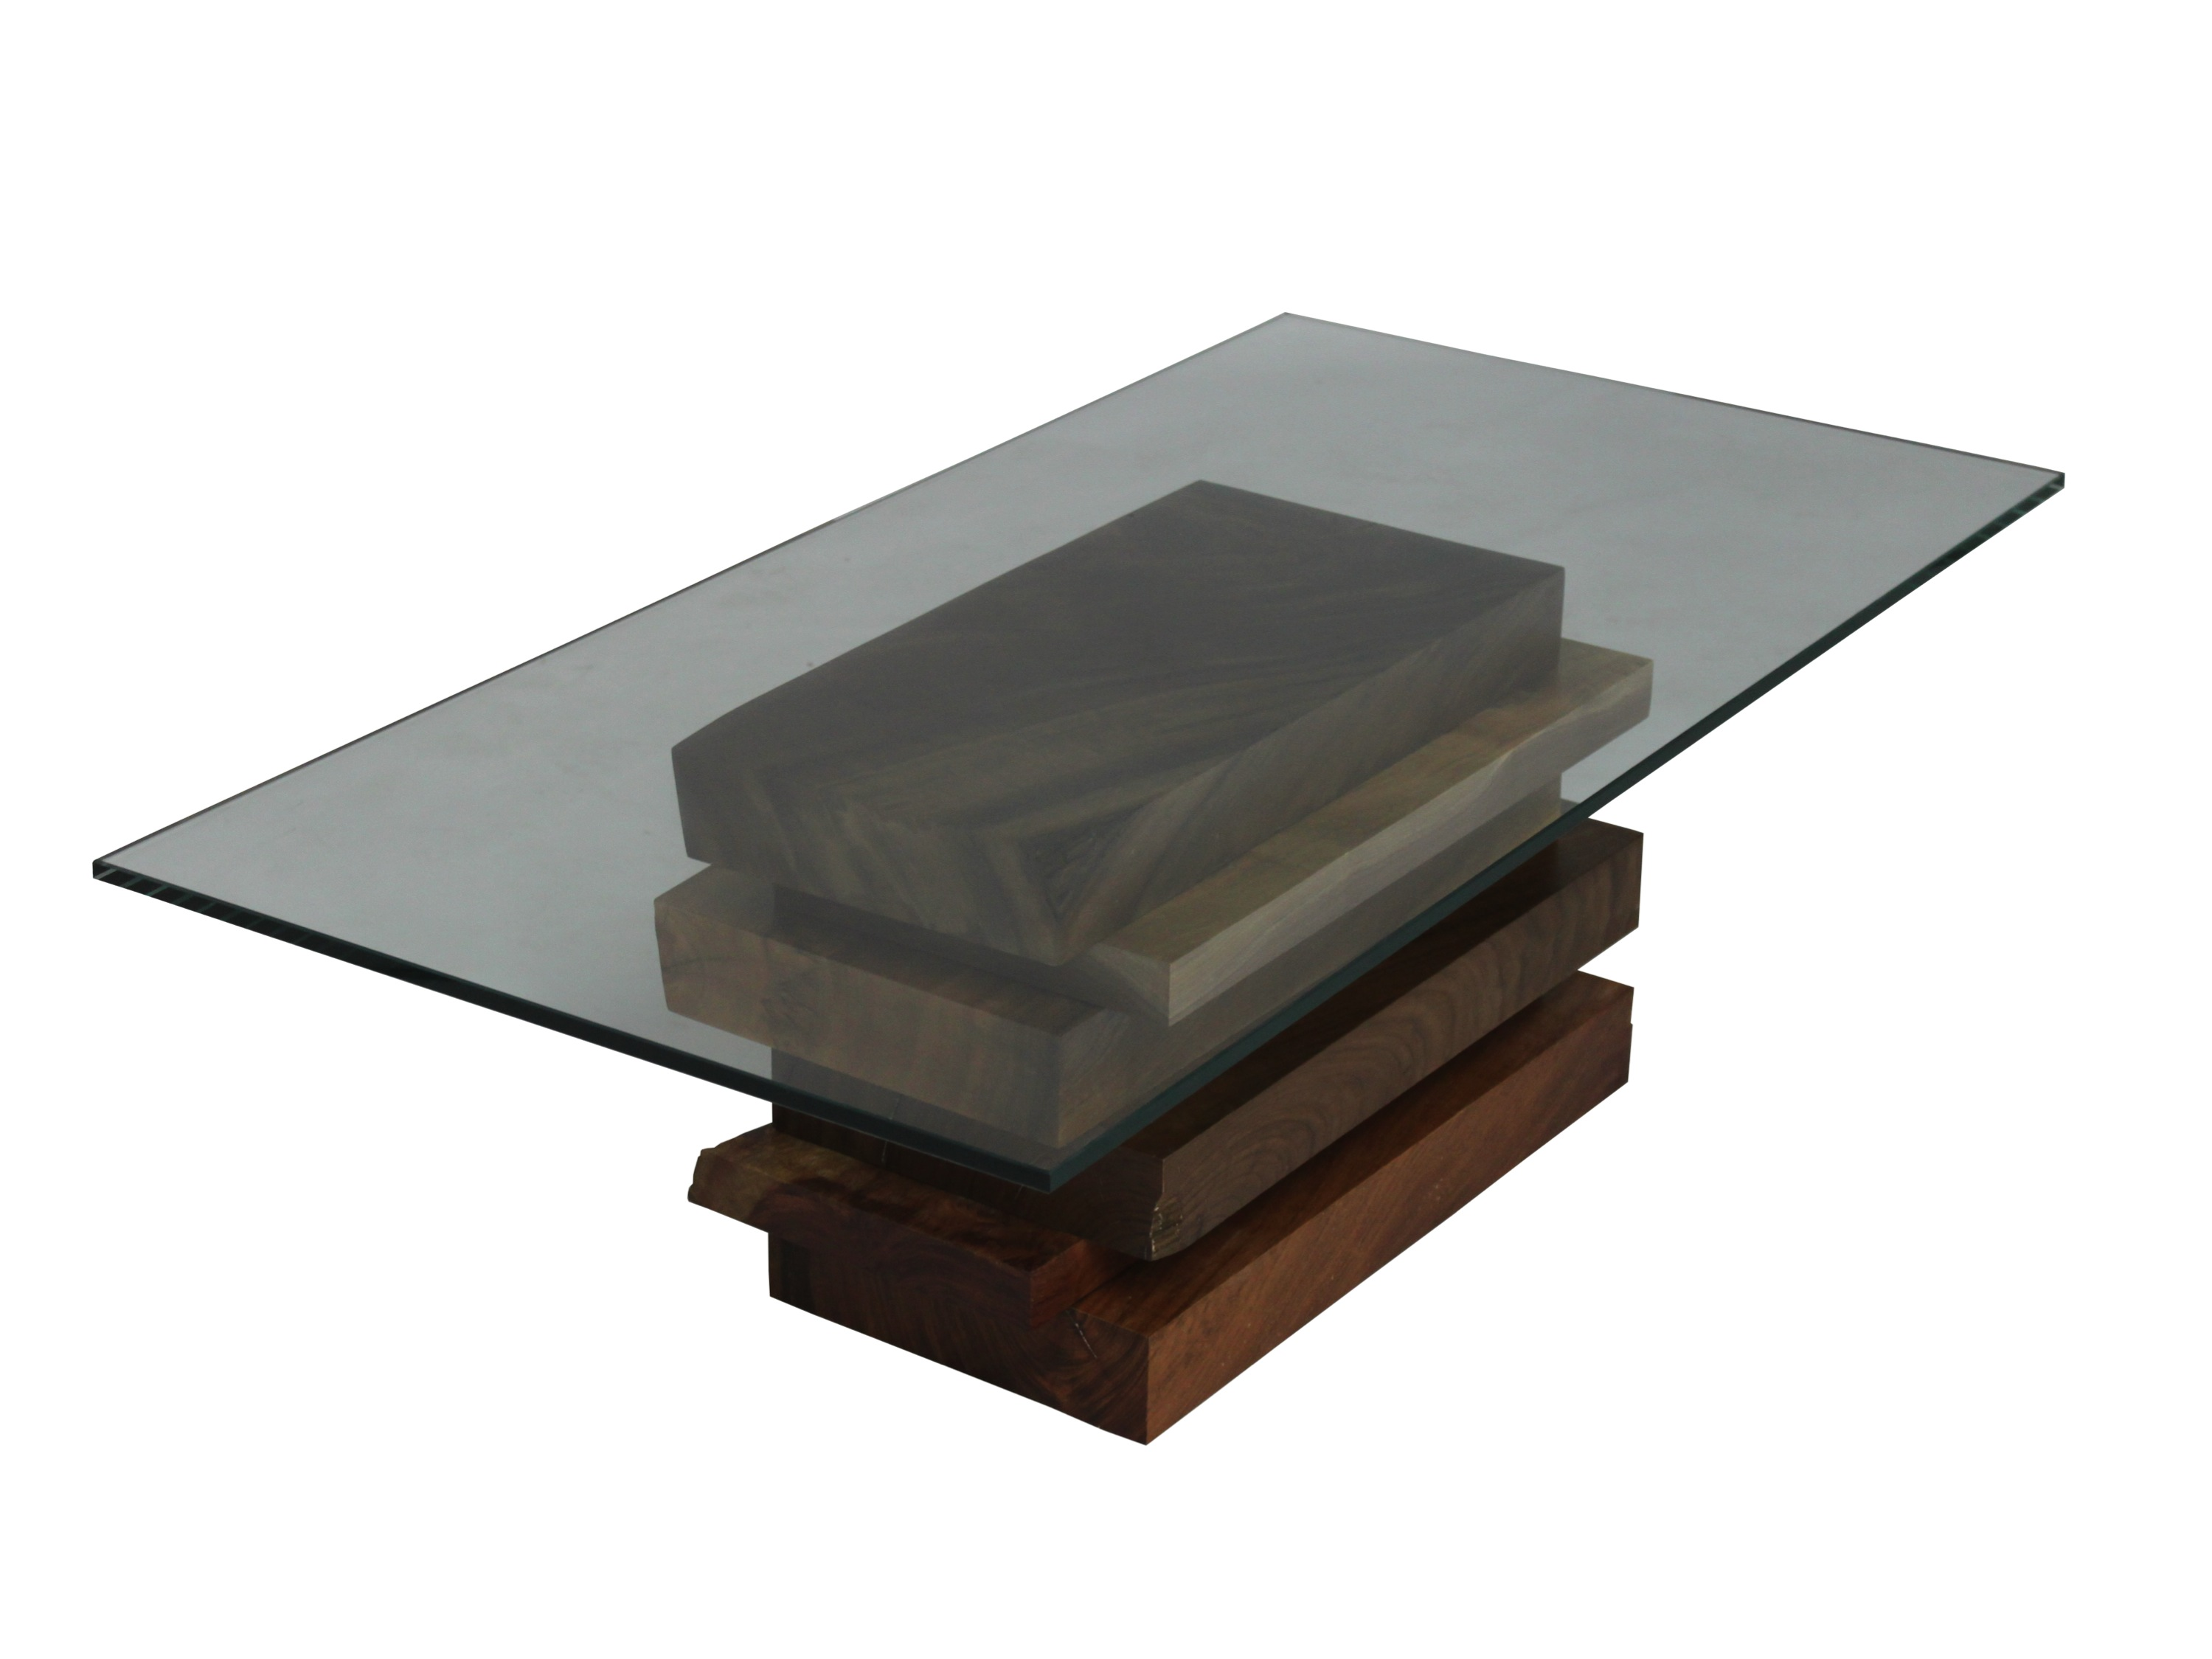 Glass Top Wood Coffee Table Made With Salvaged Wood Slabs In Raw Edge Or Straight Edges Simple Design Unique (Image 4 of 10)